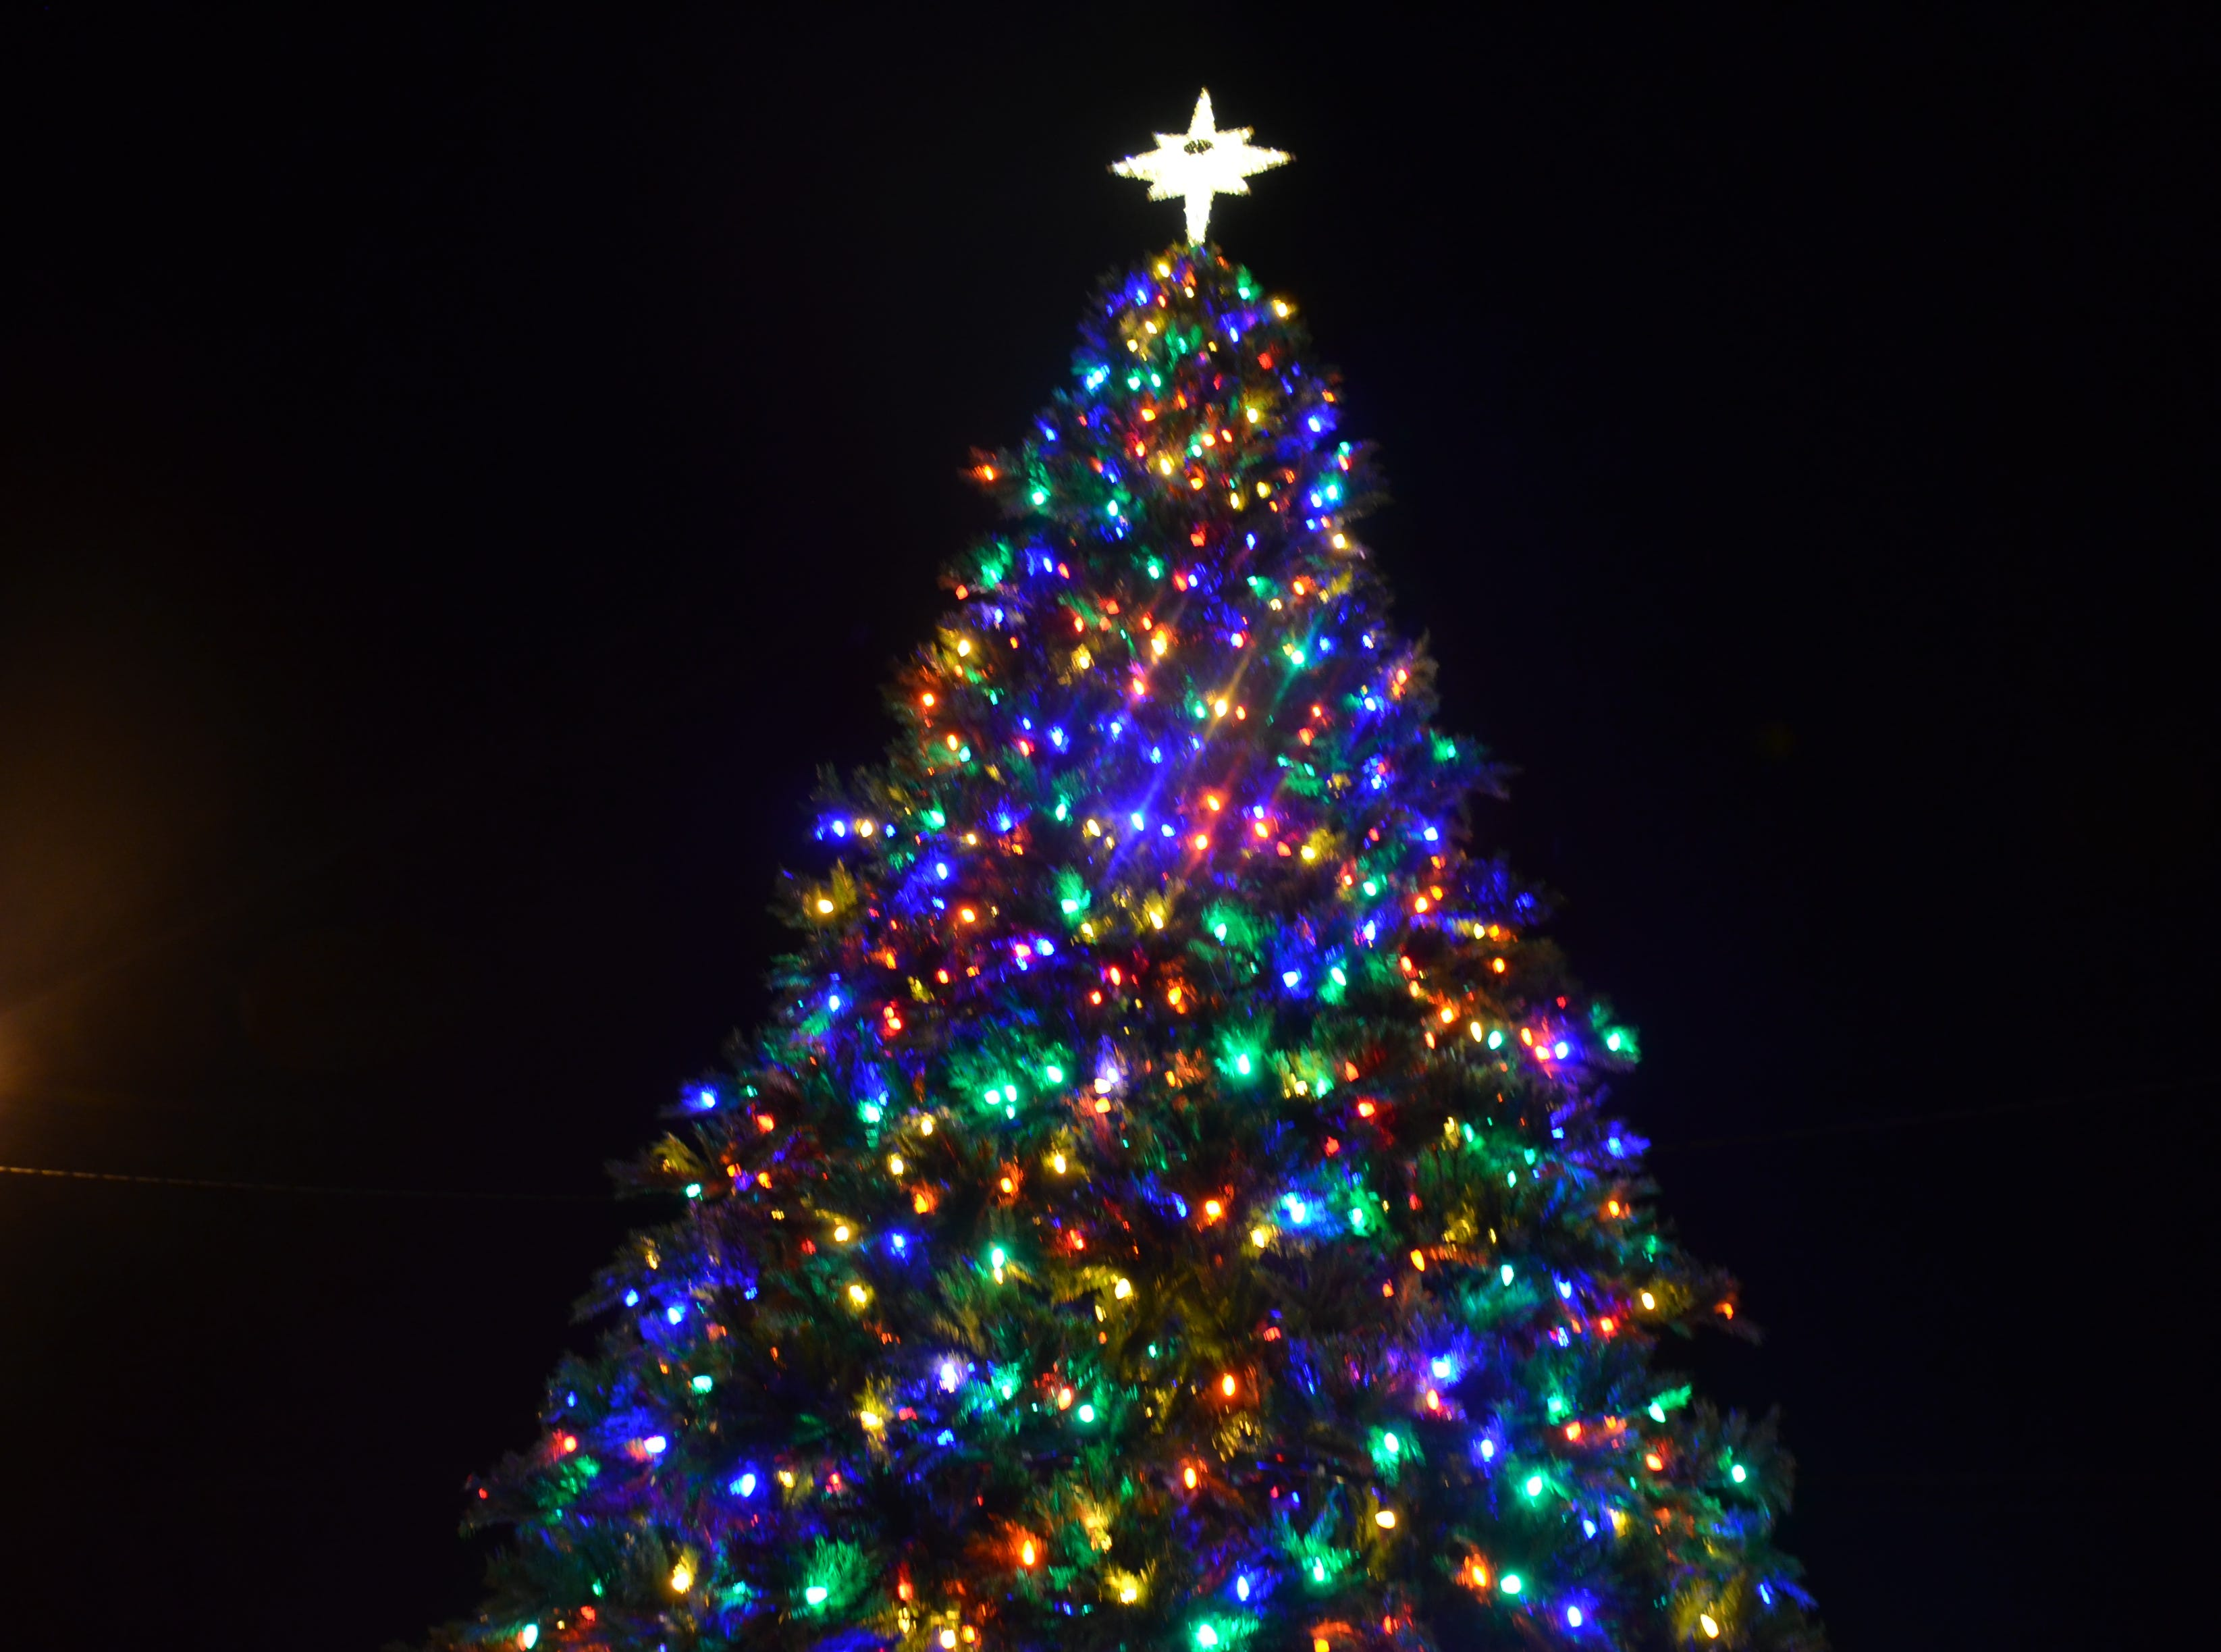 Luna County's first ever Christmas tree at night.